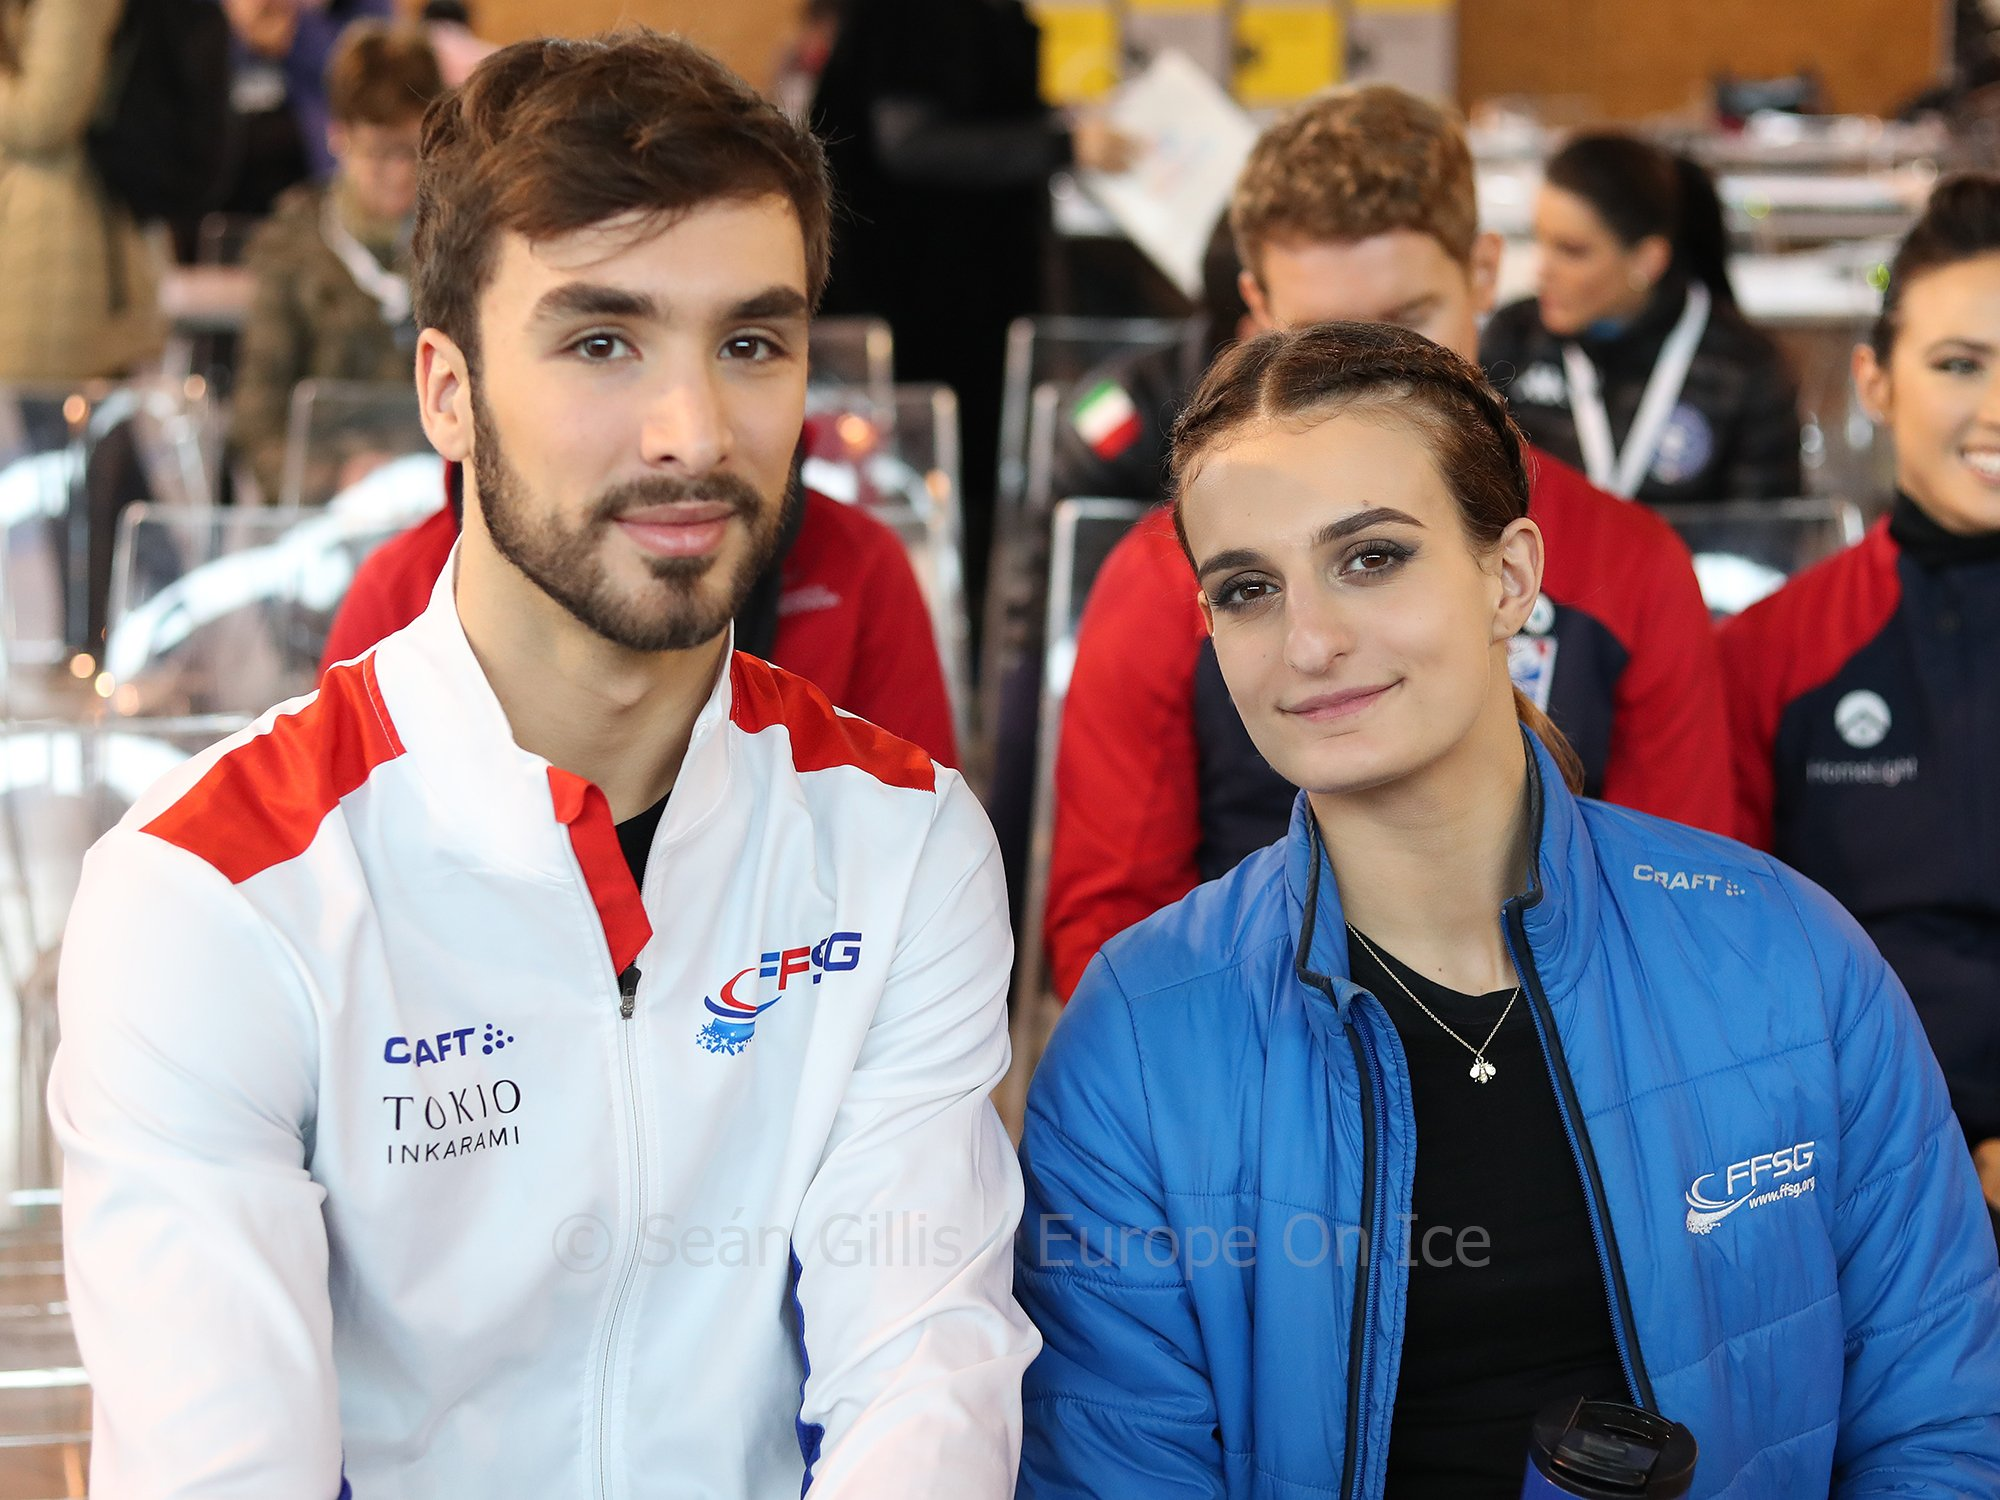 GP - 3 этап. Internationaux de France Grenoble / FRA November 1-3, 2019 - Страница 2 EIOhfKKXsAAMW1Q?format=jpg&name=large